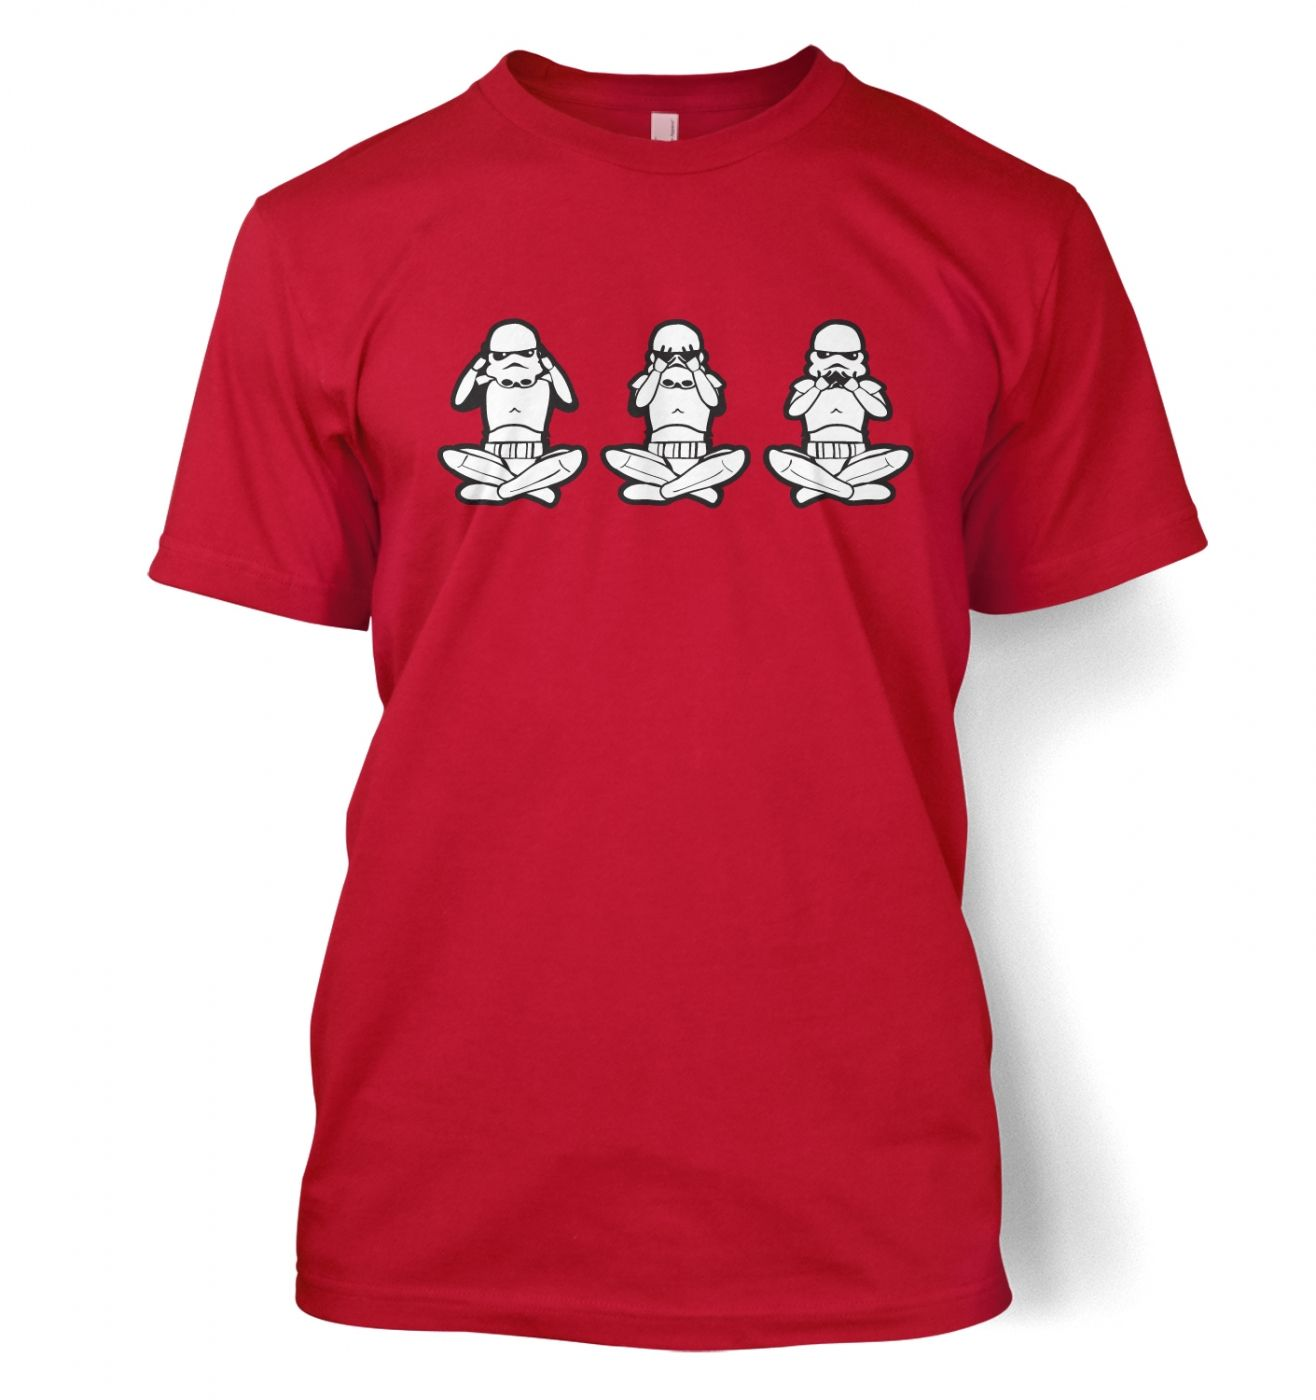 Three Wise Stormtroopers t-shirt